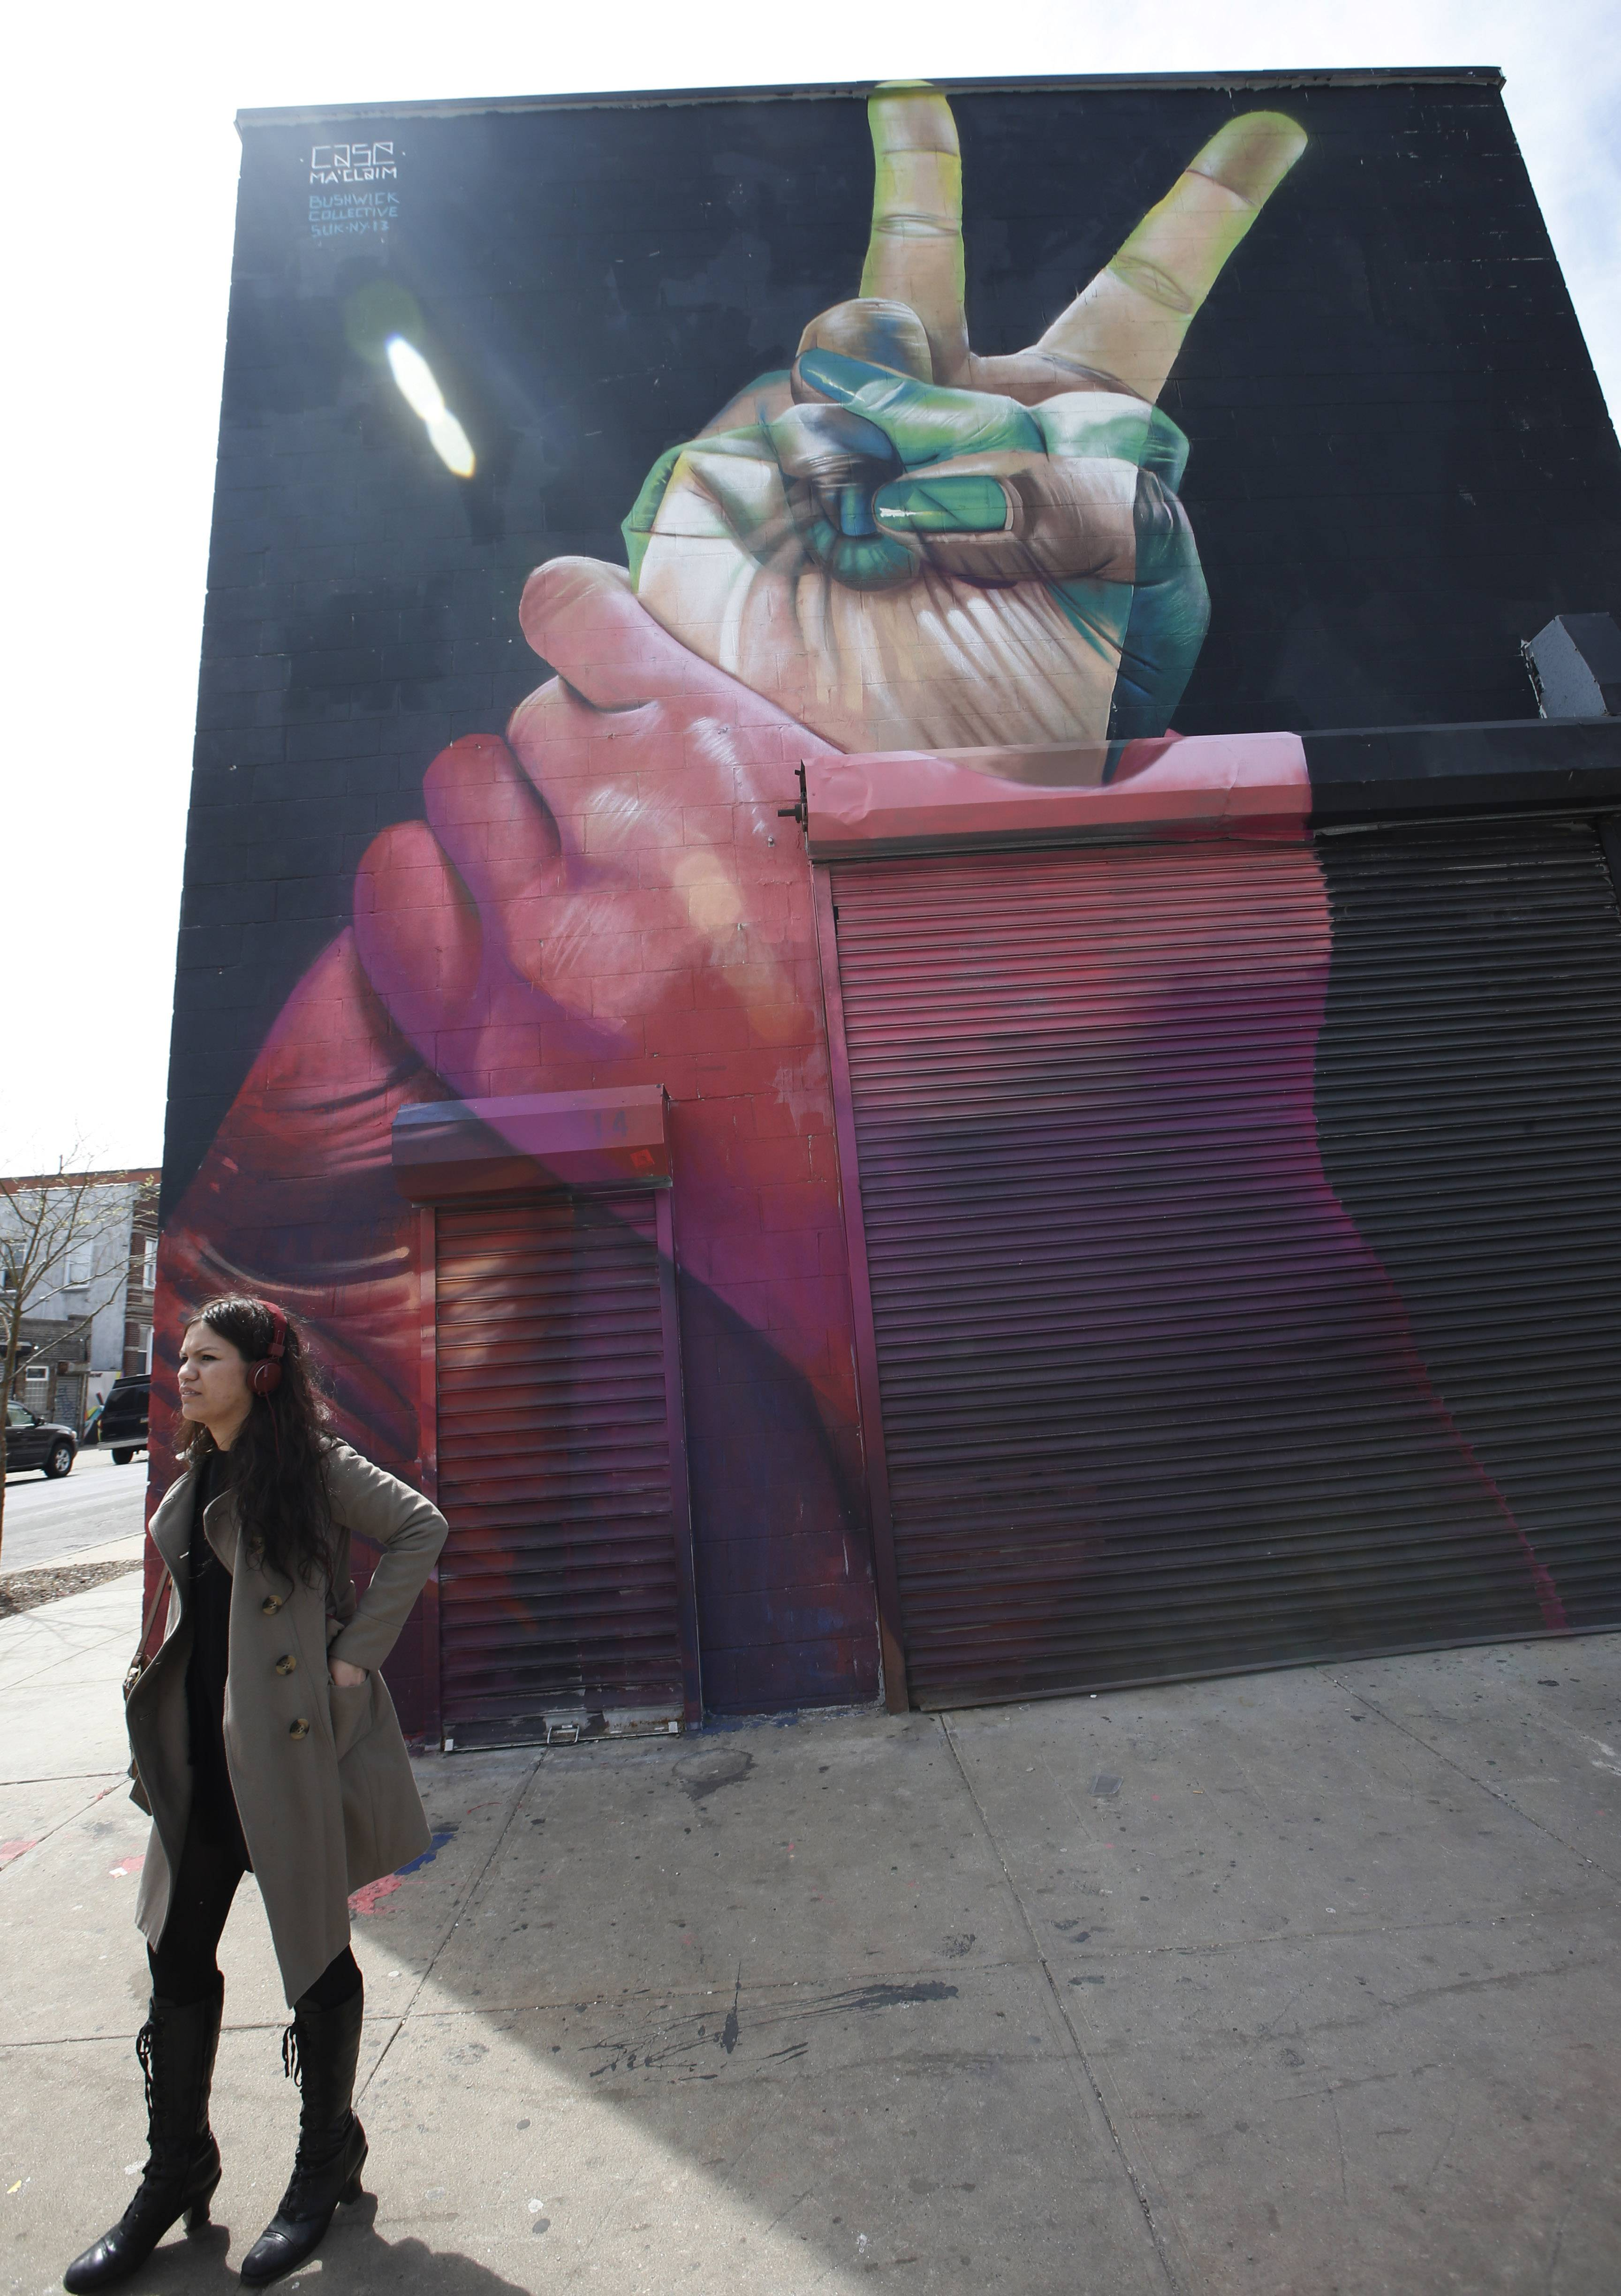 A young woman stands at the intersection of Wyckoff and Troutman streets against the backdrop of bold and colorful street art in Bushwick, New York.